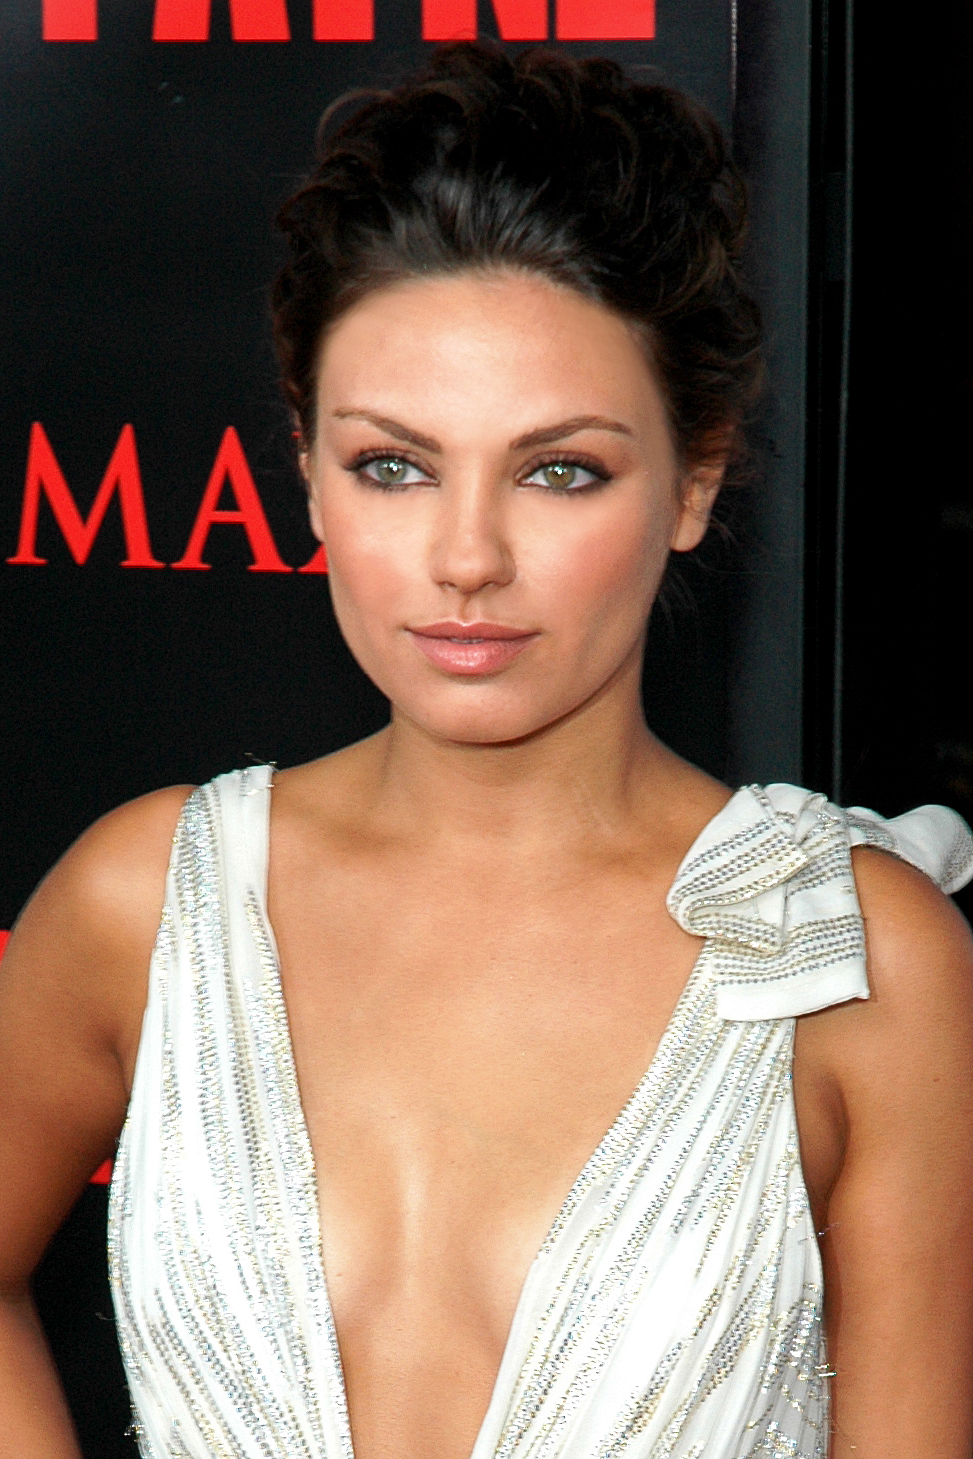 mila kunis life style fashion and styles. Black Bedroom Furniture Sets. Home Design Ideas